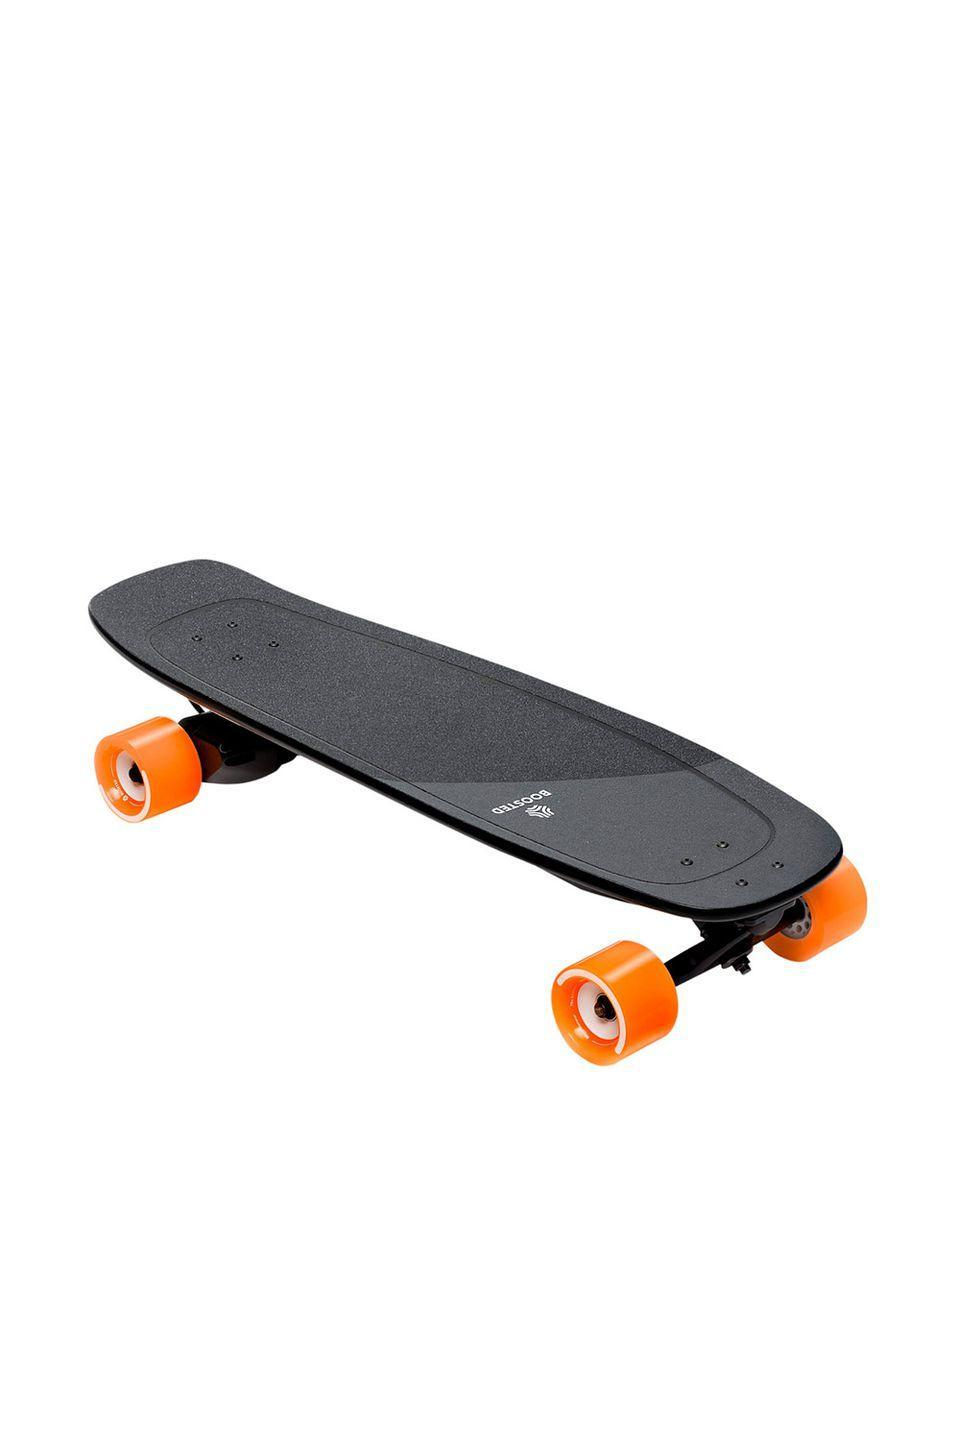 """<p>Jamming out to """"Sk8er Boi"""" by Avril Lavigne will never be the same. </p><p>Boosted mini electric skateboard, $749, <a href=""""https://boostedboards.com/"""" rel=""""nofollow noopener"""" target=""""_blank"""" data-ylk=""""slk:boostedboards.com"""" class=""""link rapid-noclick-resp"""">boostedboards.com</a></p>"""